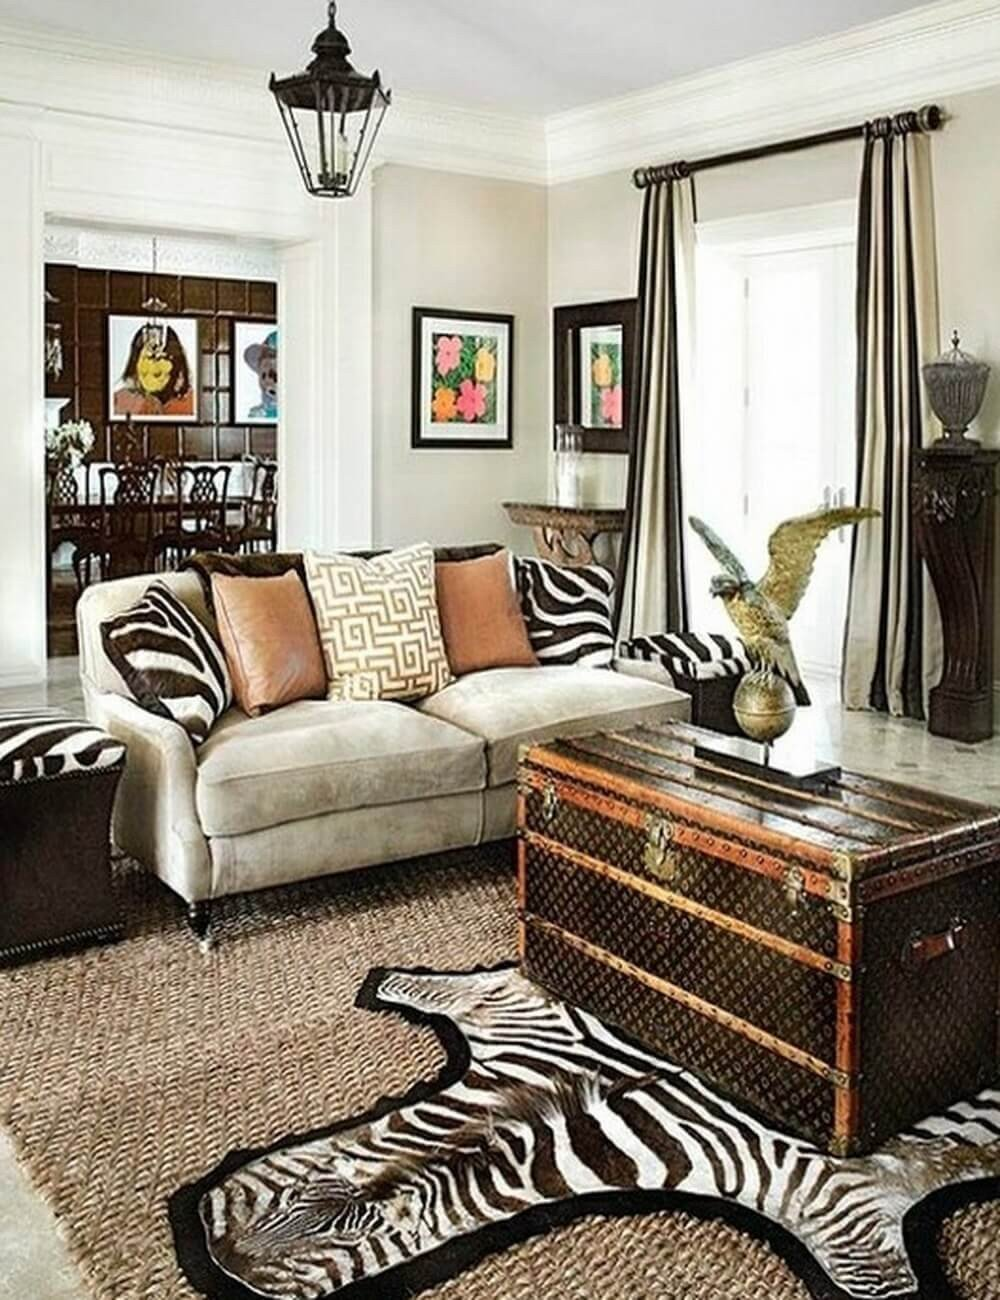 Animal Print Living Room Decor Make Your Rooms Look Fierce and Wild by Using Zebra Print